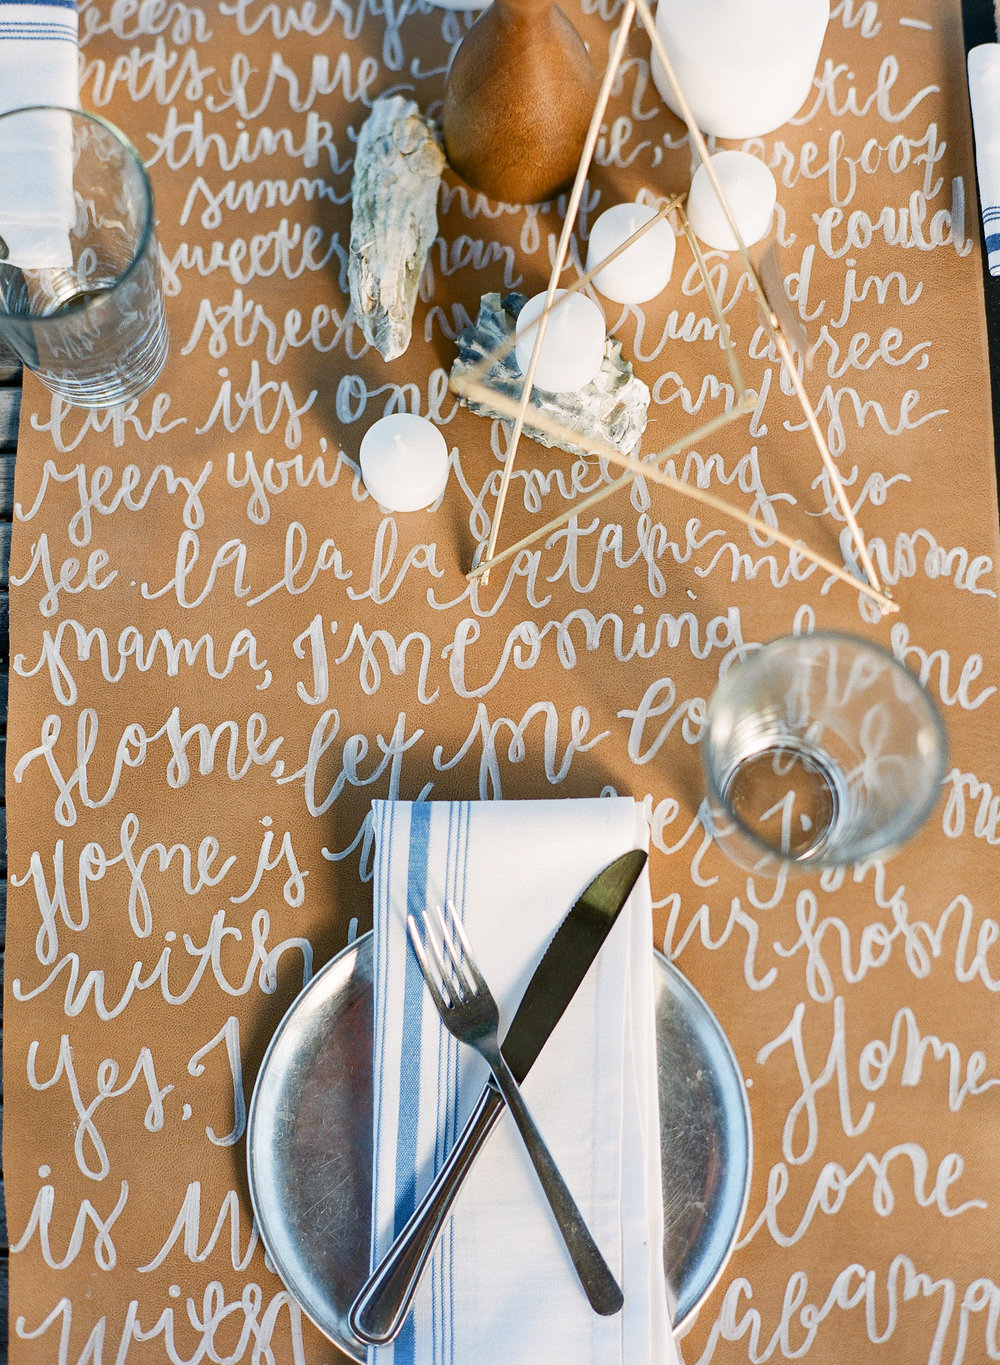 ivory-and-beau-wedding-planning-flowers-florist-calligraphy-bridesmaids-dresses-wedding-dresses-photography-bridal-boutique-savannah-georgia-southern-wedding-coordinator-event-coordinator-bride113.jpg